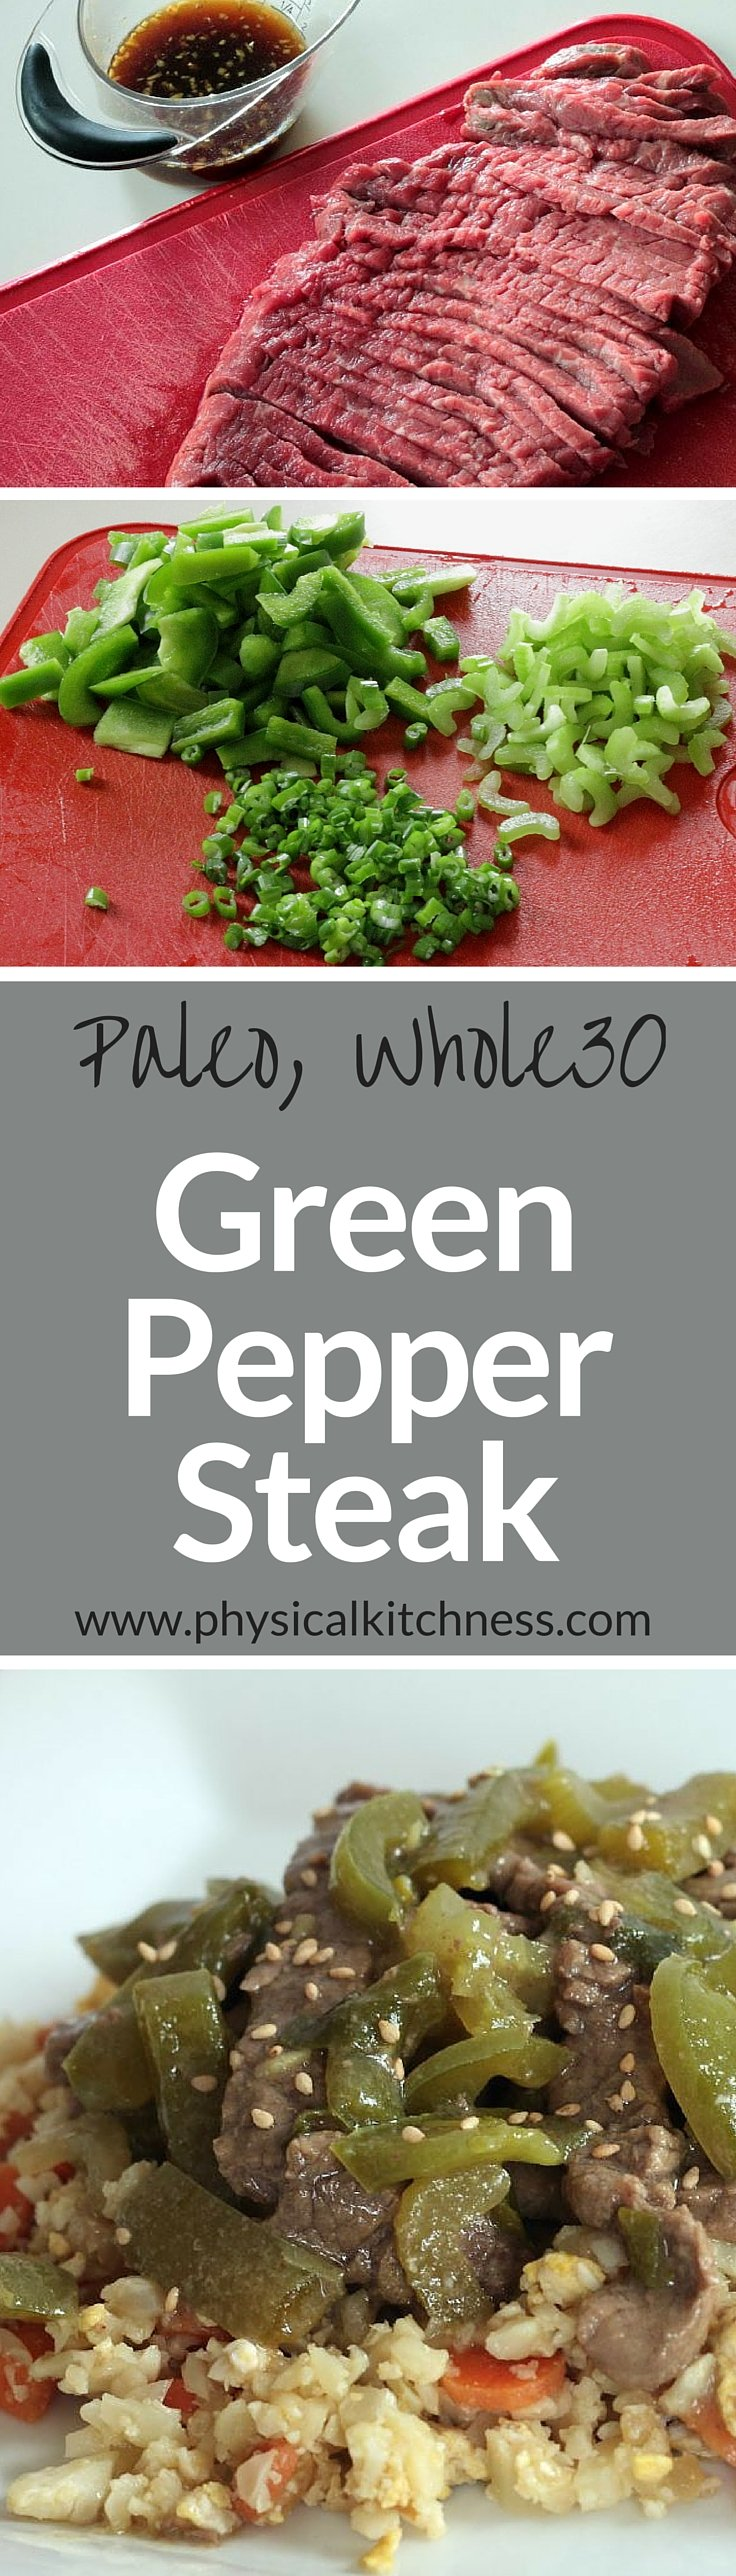 This squeaky clean green pepper steak is paleo, whole30 compliant, and delicious.